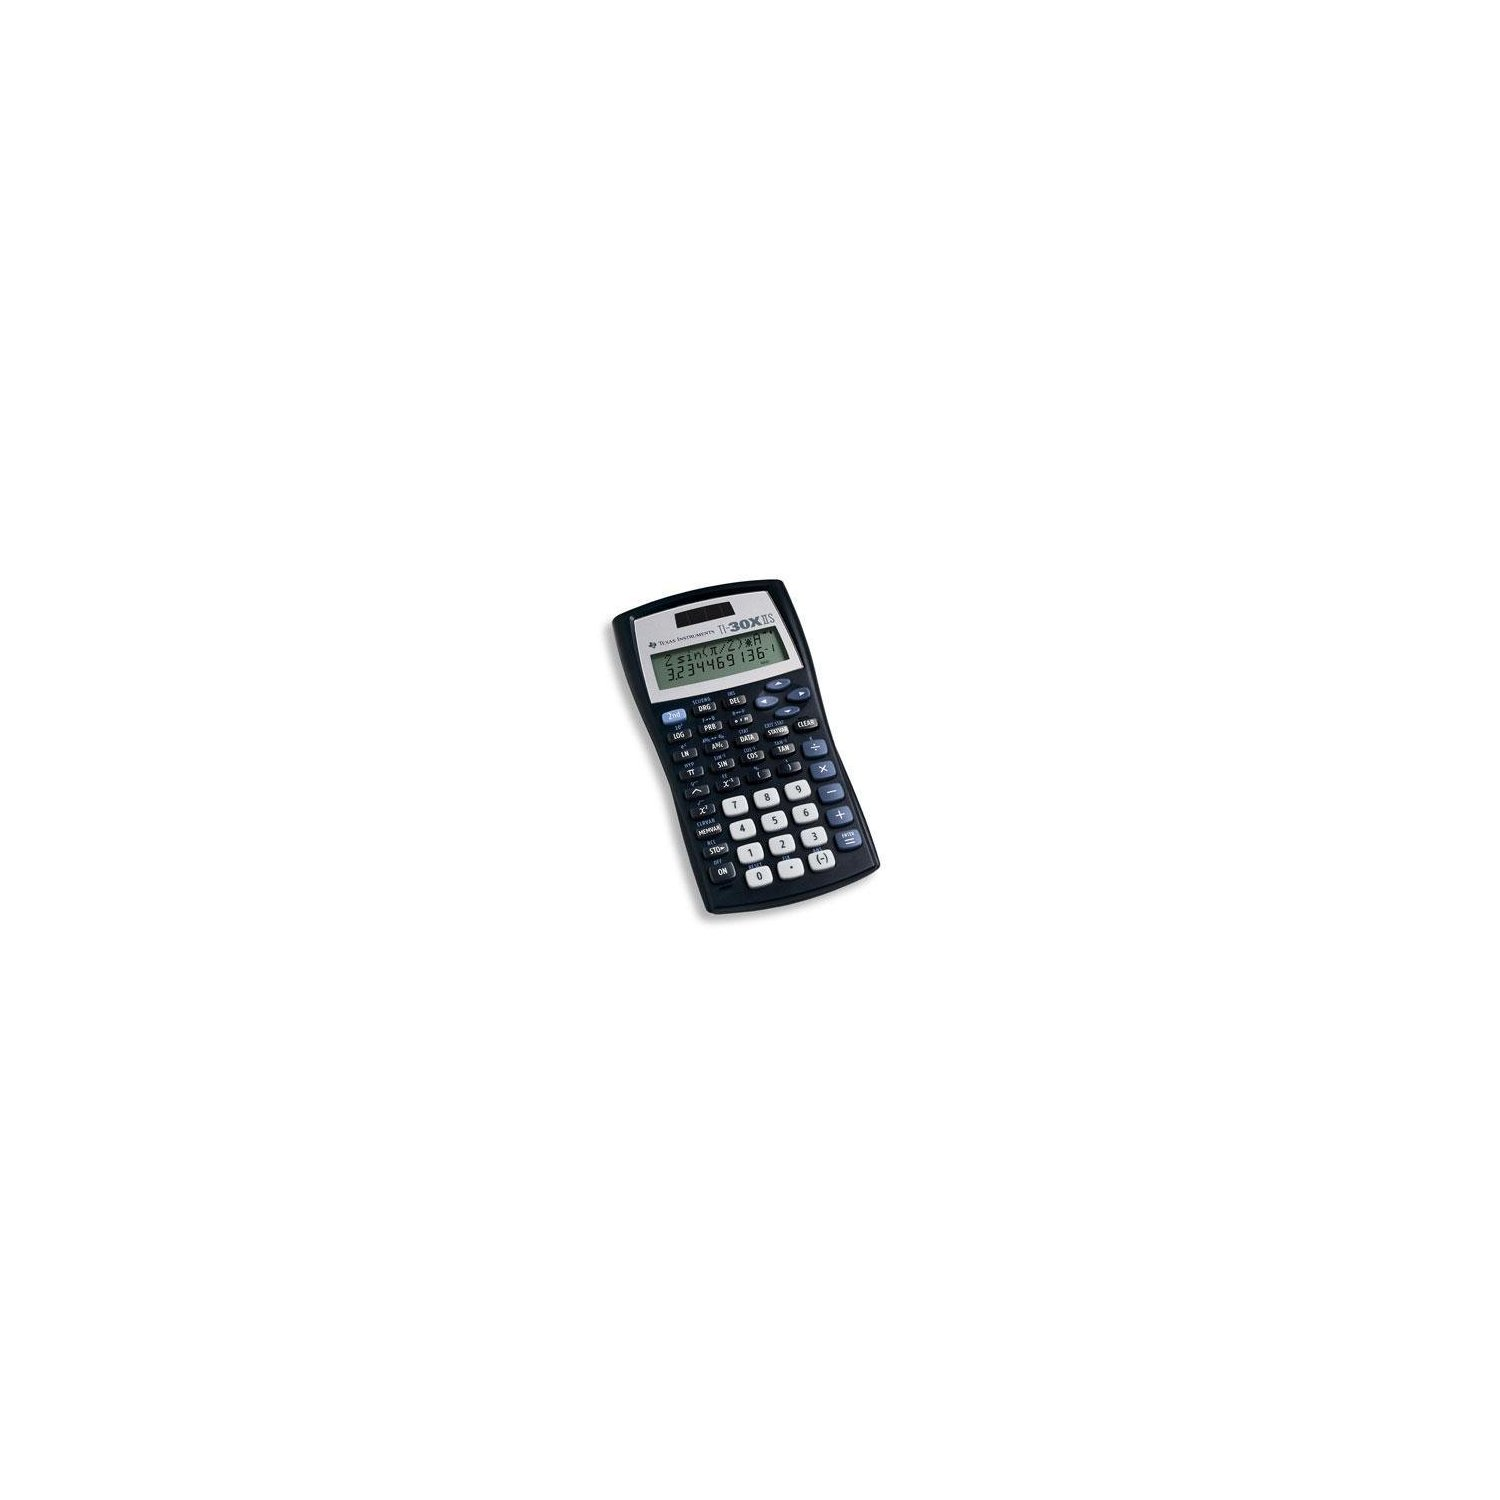 Texas Instruments Ti-30x IIS 2-line Scientific Calculator - Light Blue